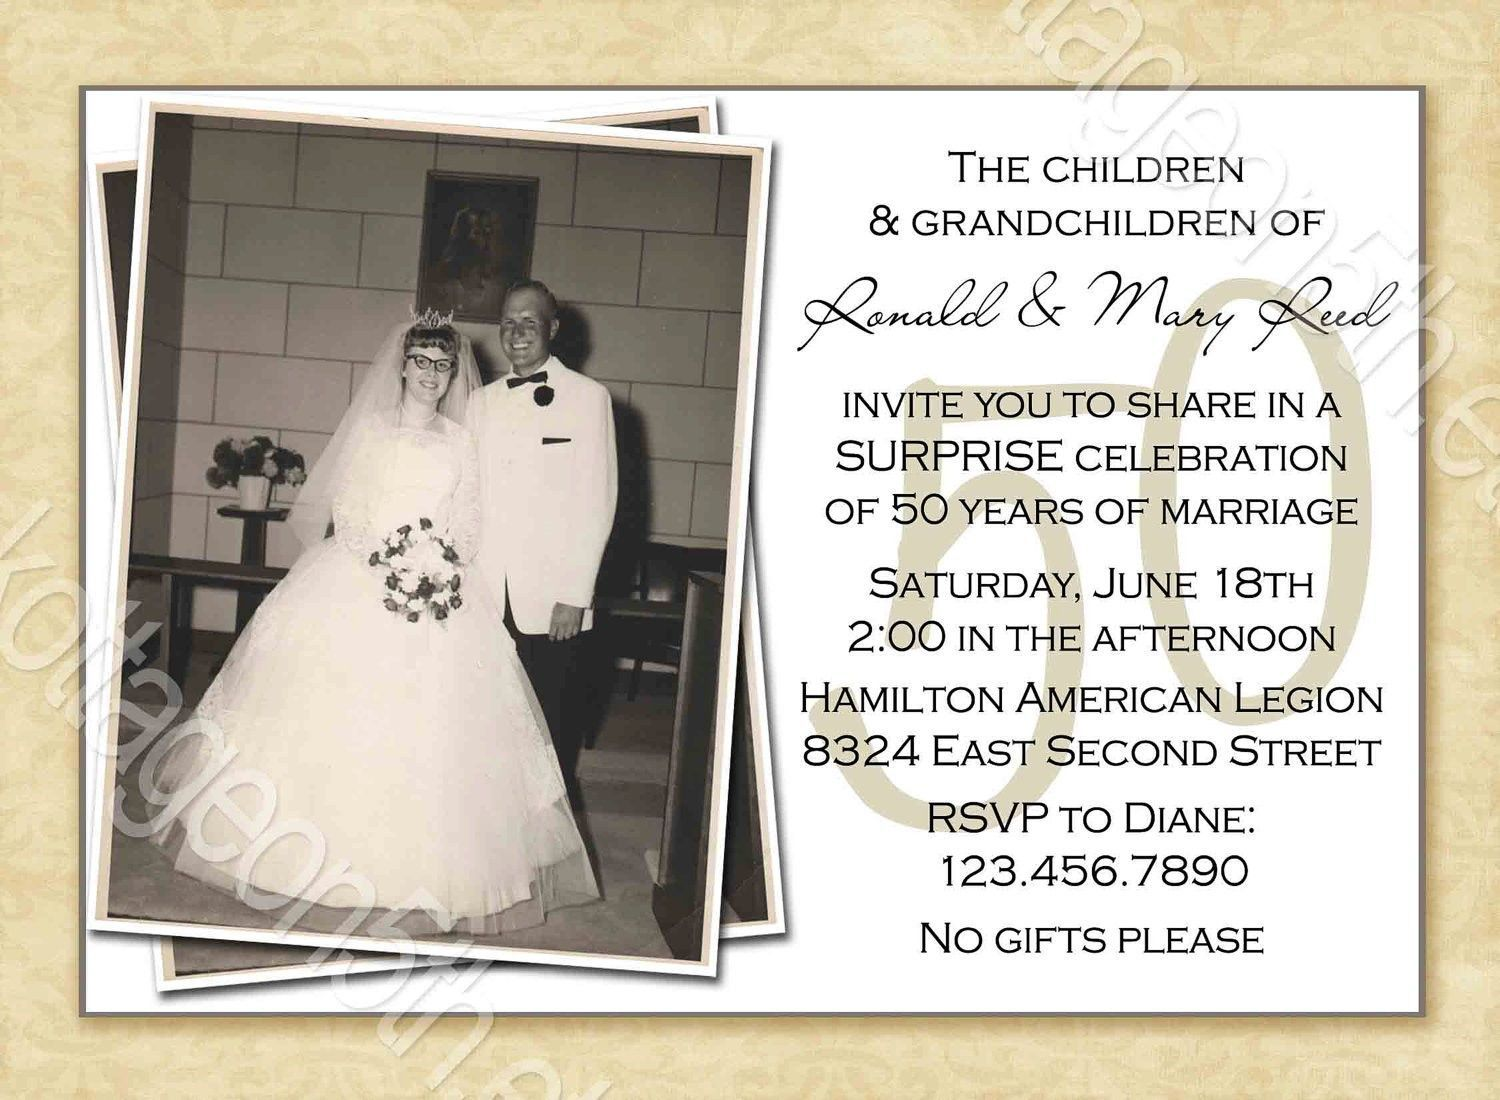 000 Frightening 50th Anniversary Invitation Template Free Image  For Word Golden Wedding DownloadFull